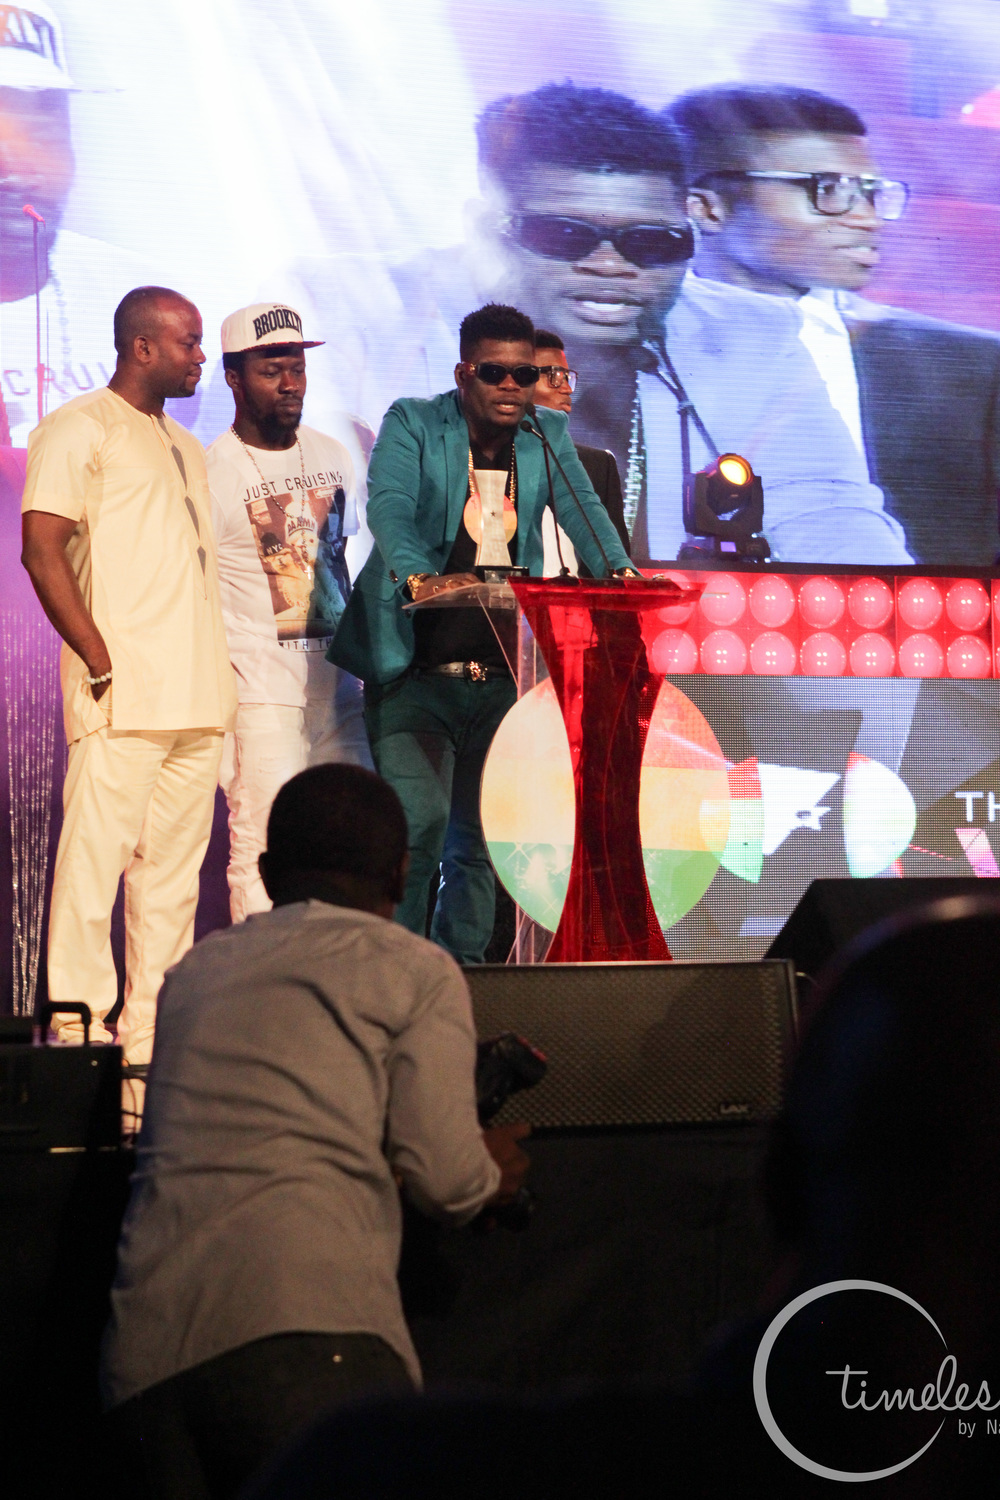 Castro receiving his award at Vodafone Music Awards 2014